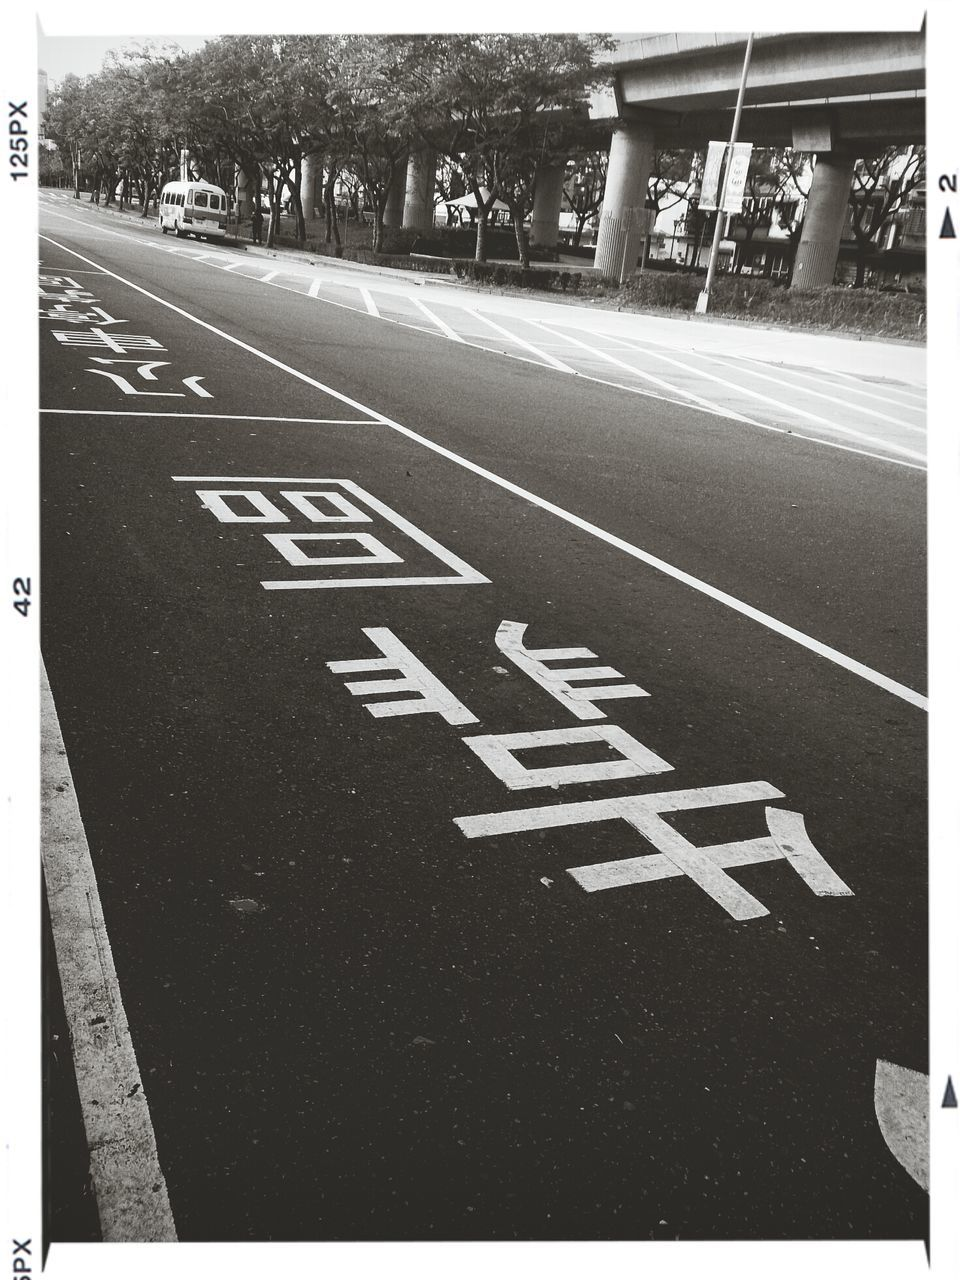 Street With Asian Script